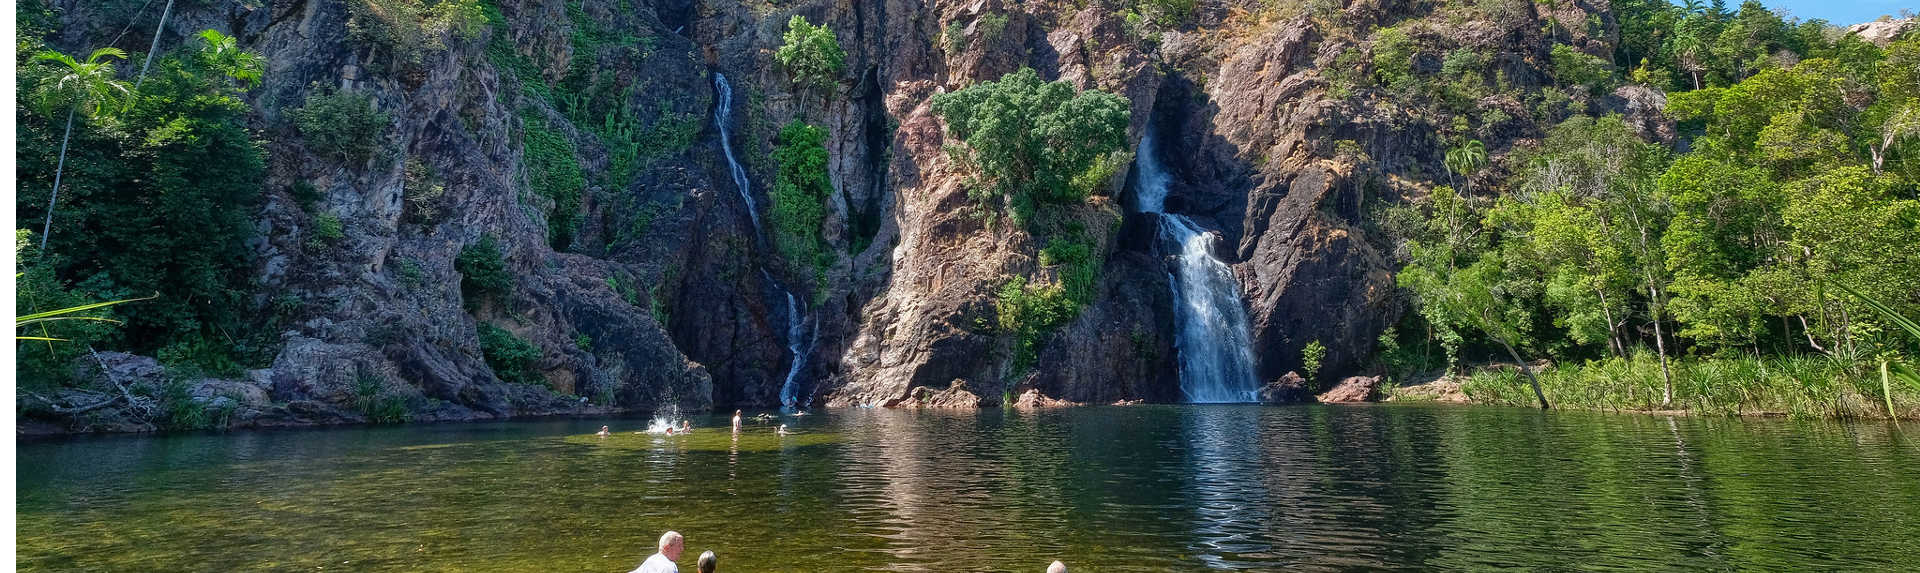 Are there crocodiles in Litchfield National Park?